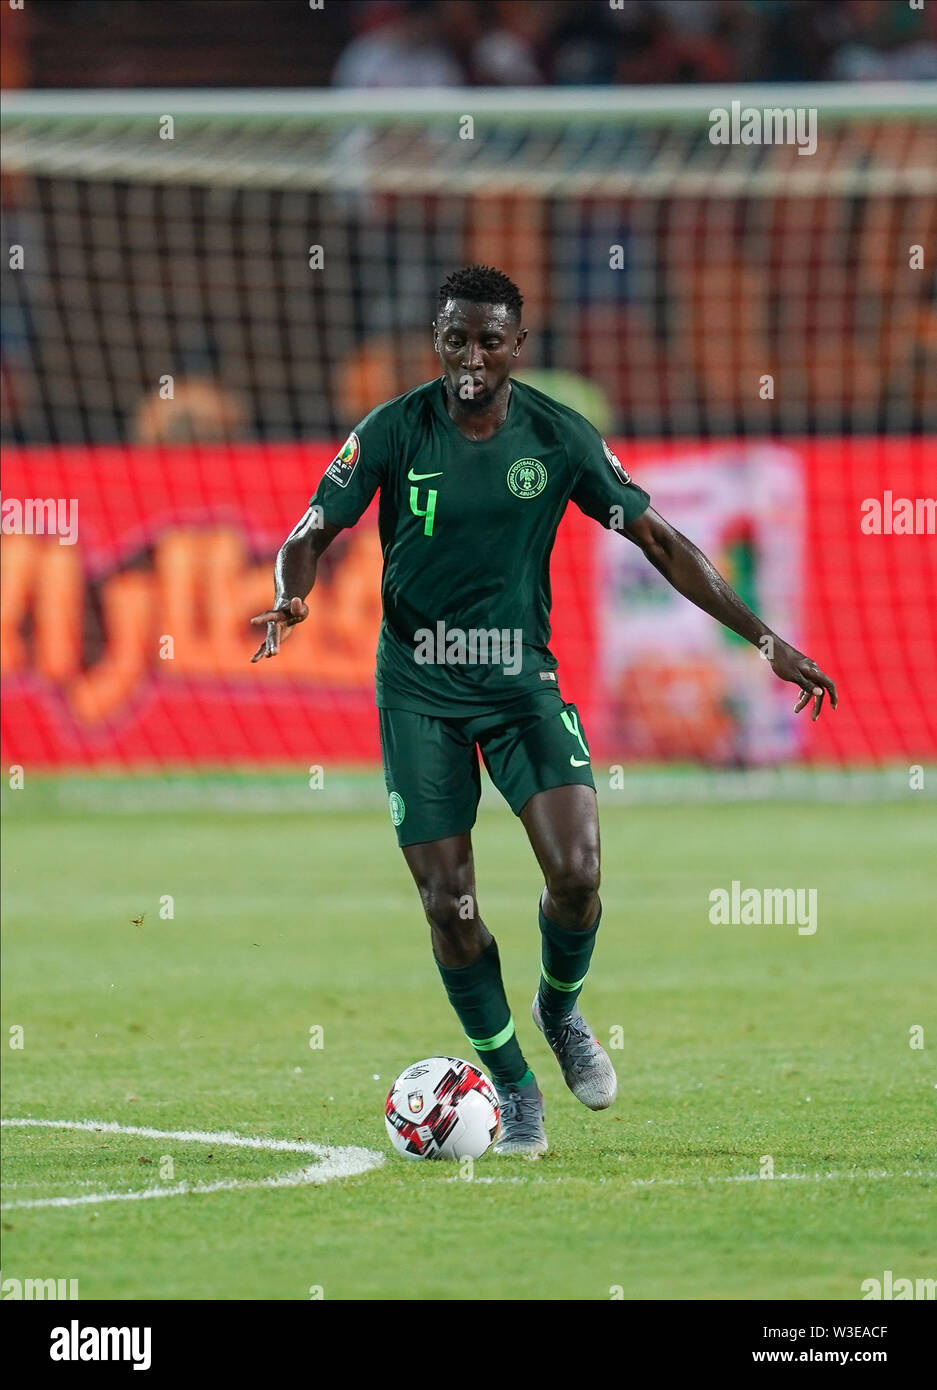 Cairo, Algeria, Egypt. 14th July, 2019. FRANCE OUT July 14, 2019: Ndidi onyinye Wilfred of Nigeria during the 2019 African Cup of Nations match between Algeria and Nigeria at the Cairo International Stadium in Cairo, Egypt. Ulrik Pedersen/CSM/Alamy Live News - Stock Image